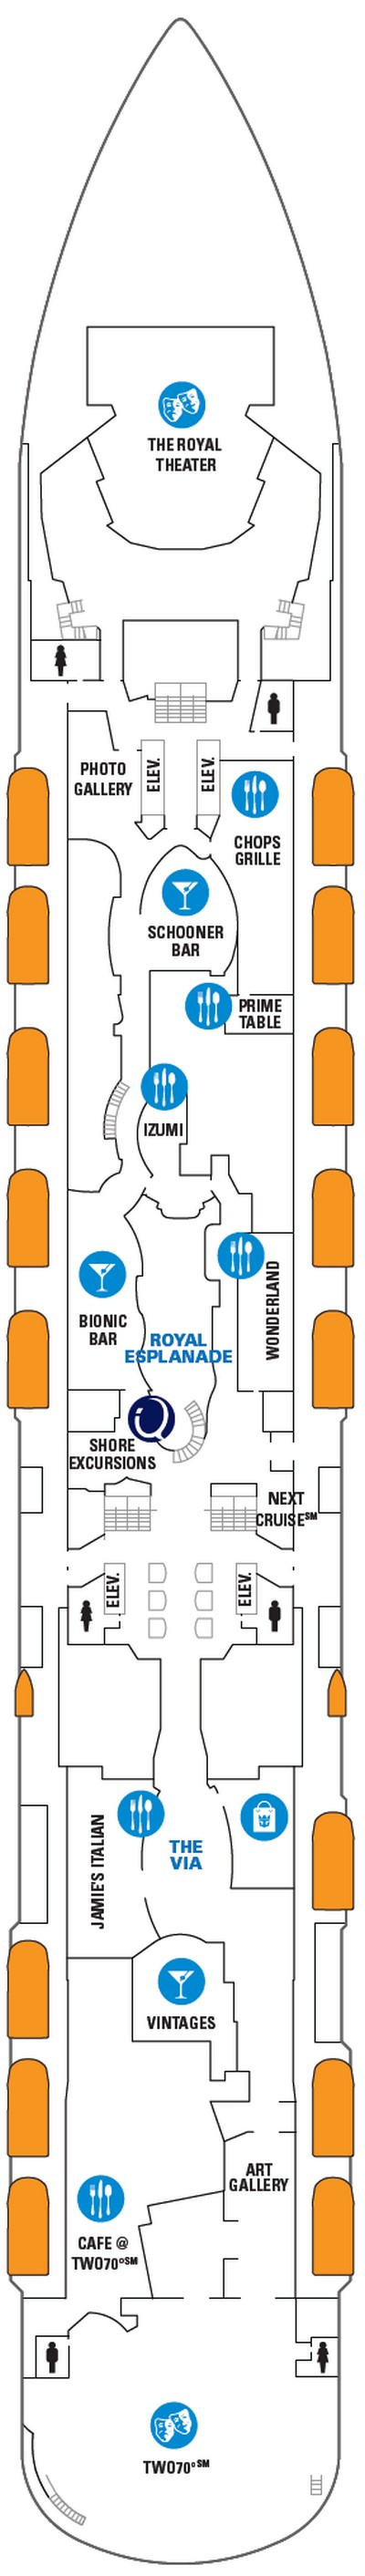 Ovation of the Seas Deck 5 layout